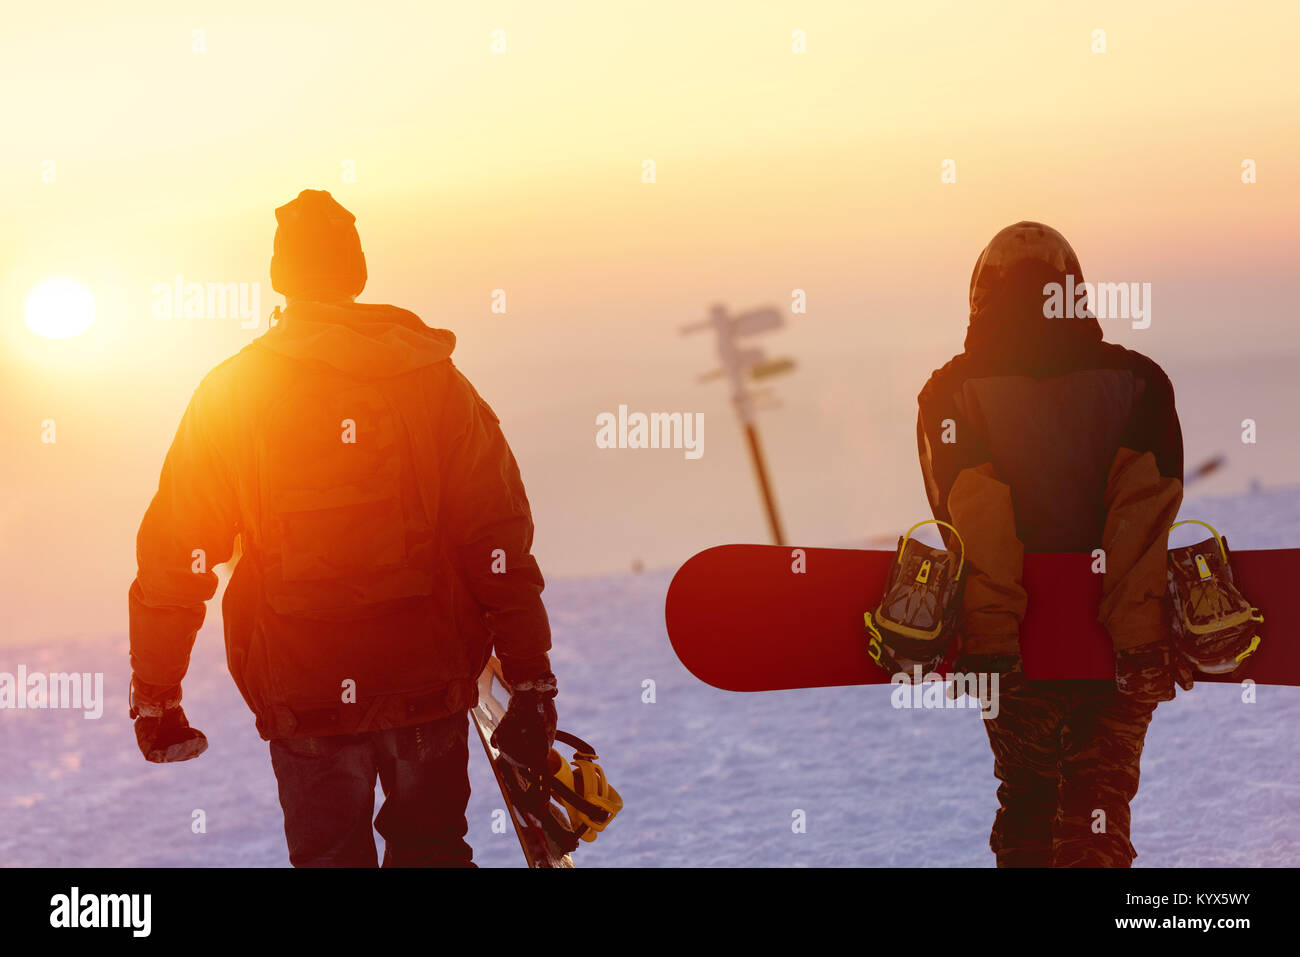 Two snowboarders walking against sunset sky - Stock Image